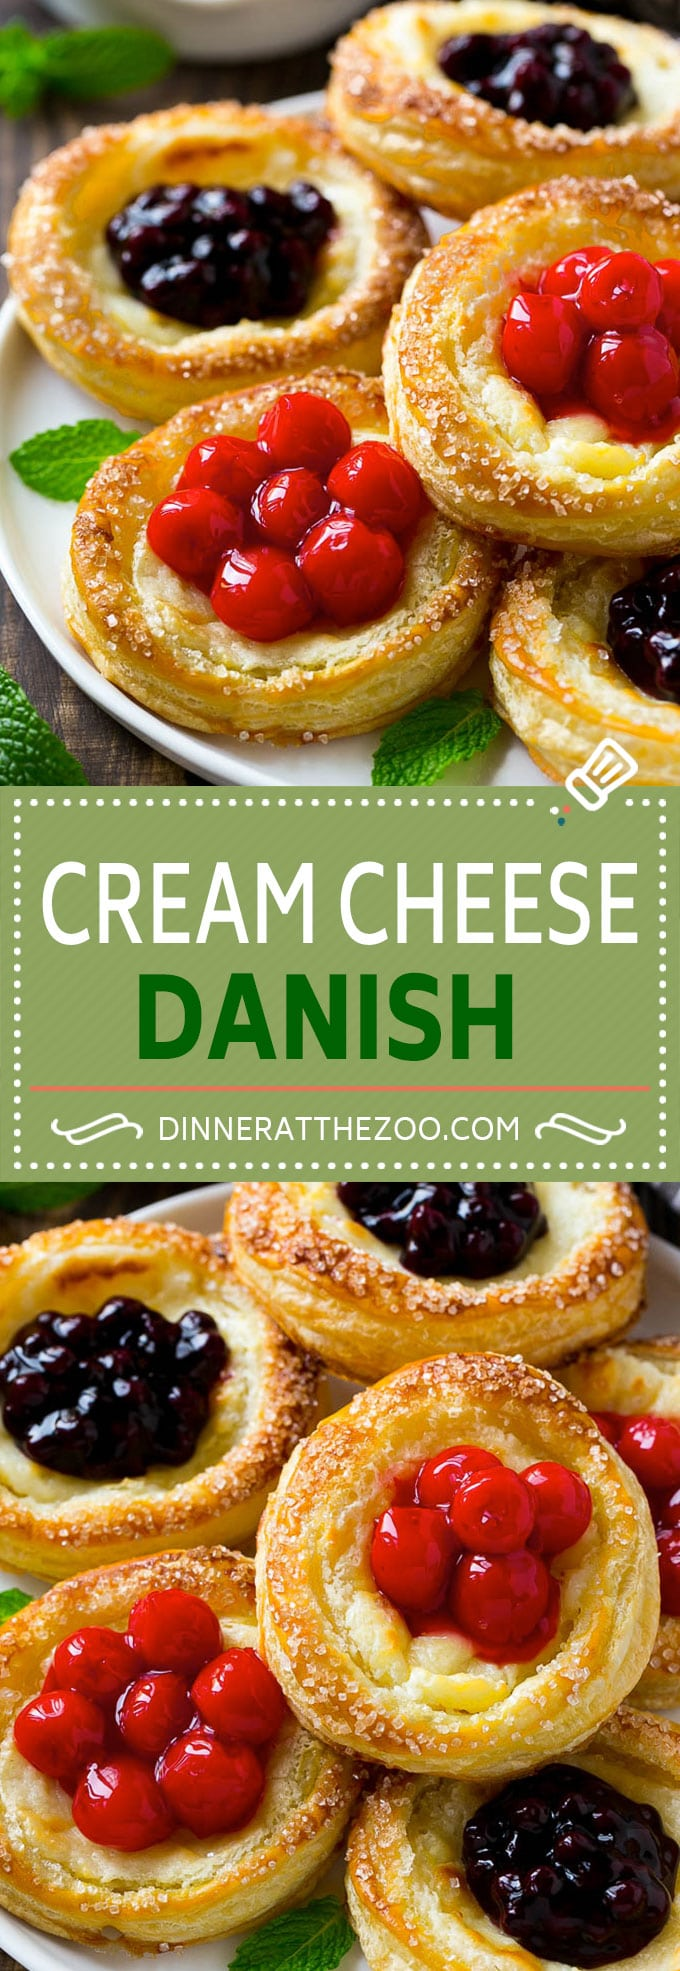 Cream Cheese Danish Recipe | Cream Cheese and Fruit Danish | Cream Cheese and Cherry Danish | Breakfast Pastries #danish #pastry #breakfast #brunch #dinneratthezoo